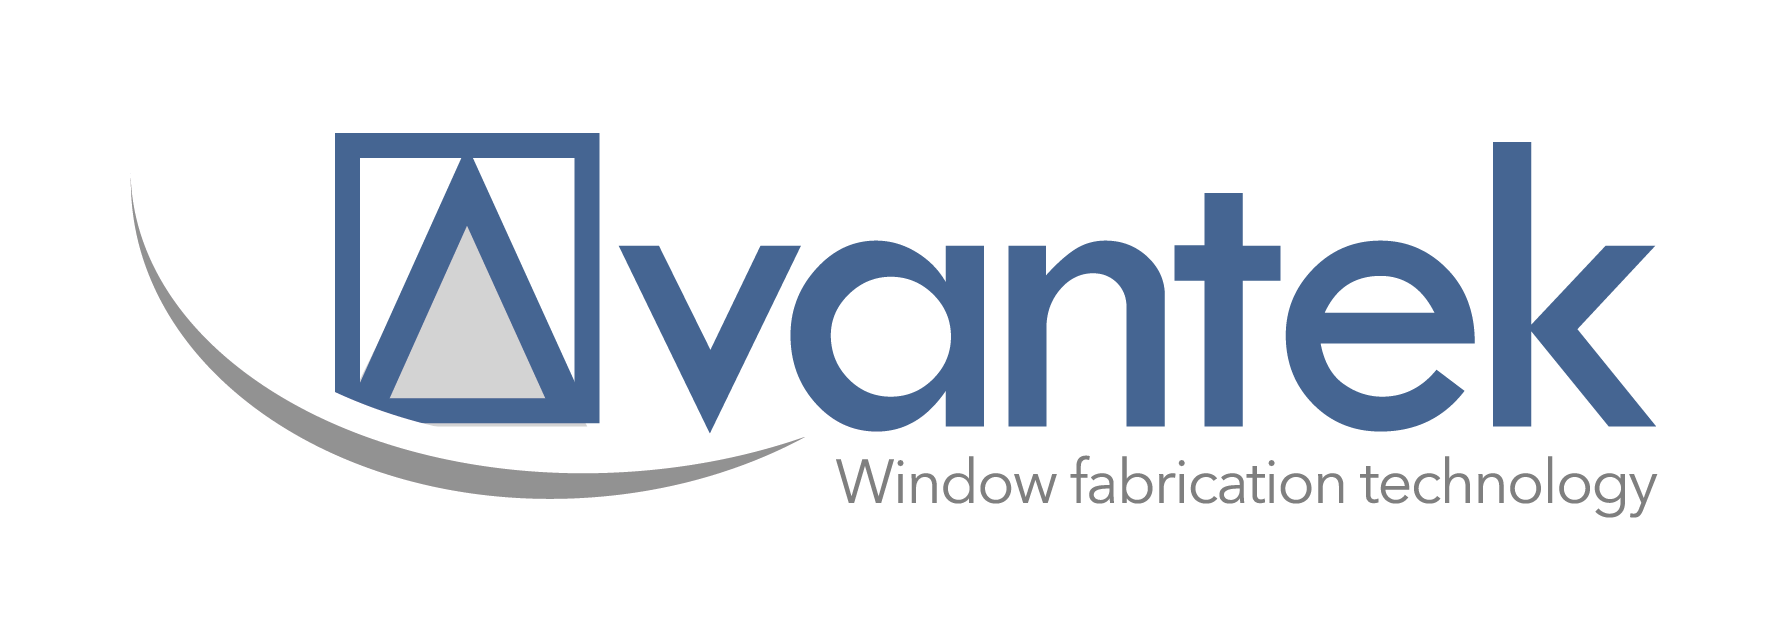 Avantek_Logo_transparent_background.png